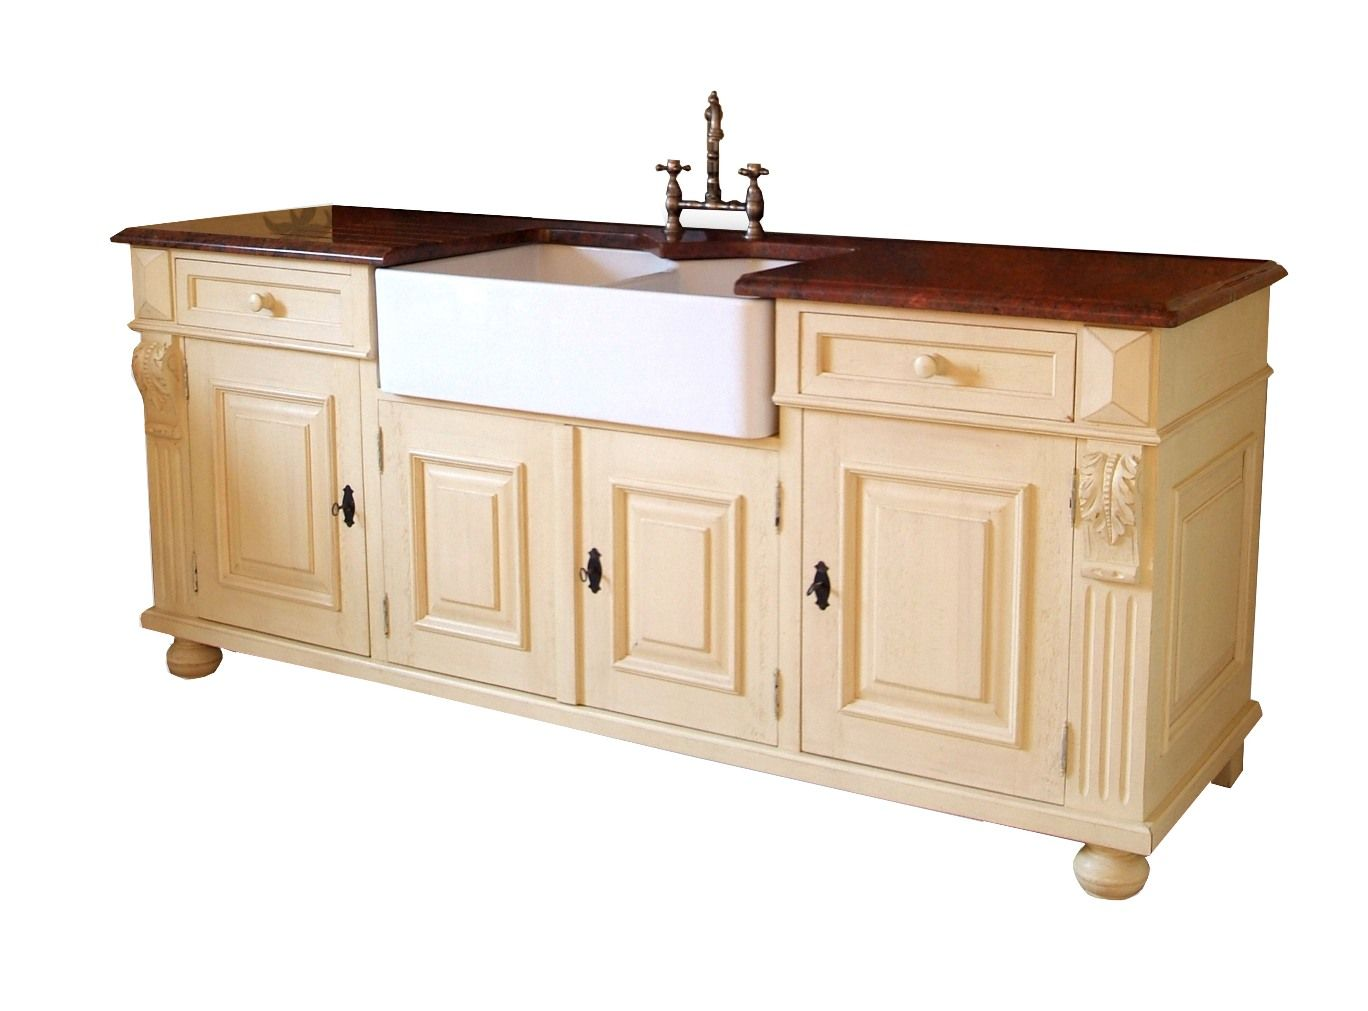 Kitchen Sink Cabinet From Old Furniture  I Would Love To Do This Adorable Sink Cabinet Kitchen Design Ideas